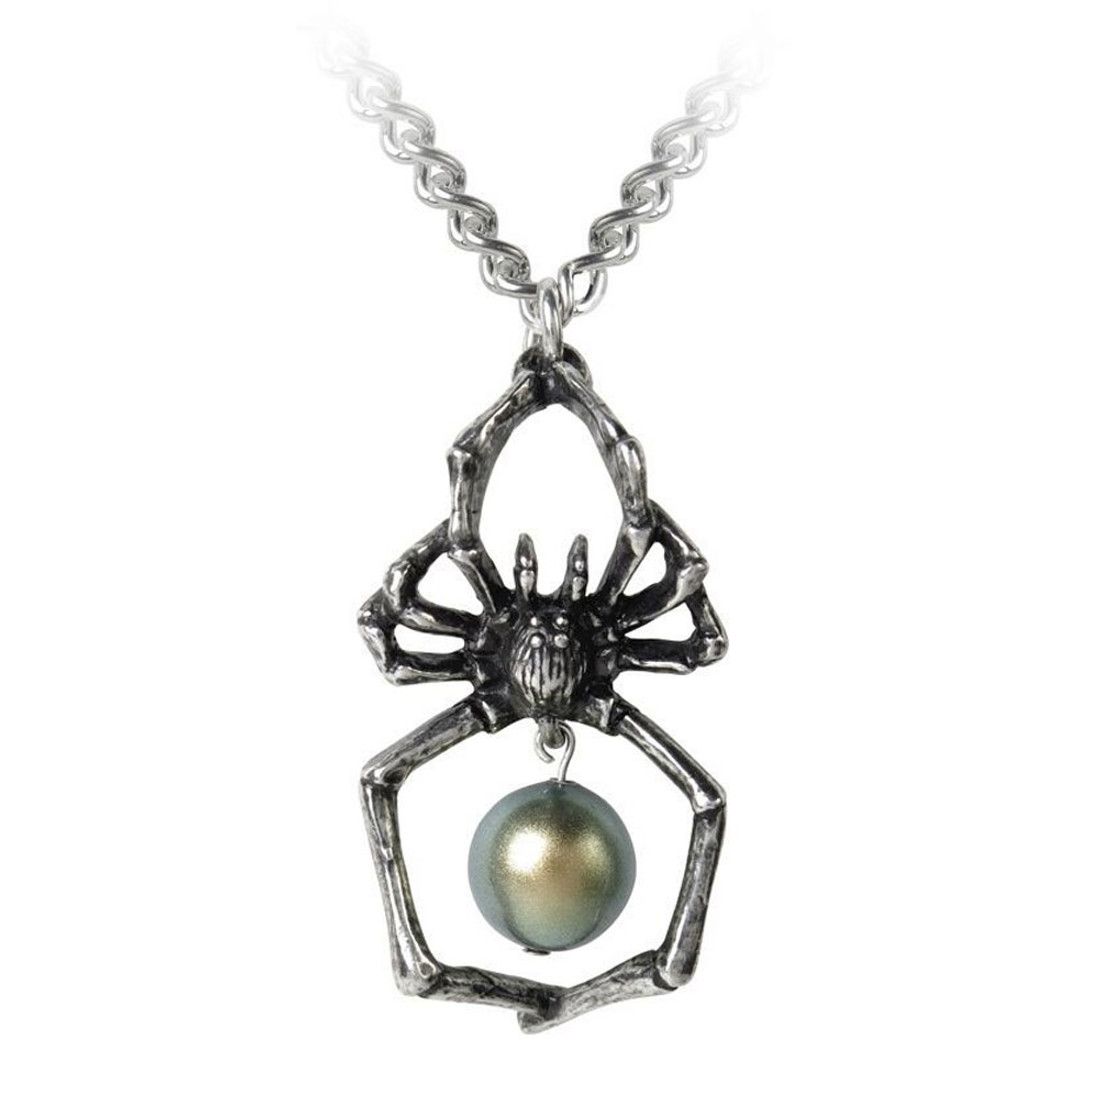 Alchemy Gothic Glistercreep Spider Pendant Necklace Pewter Jewelry P790